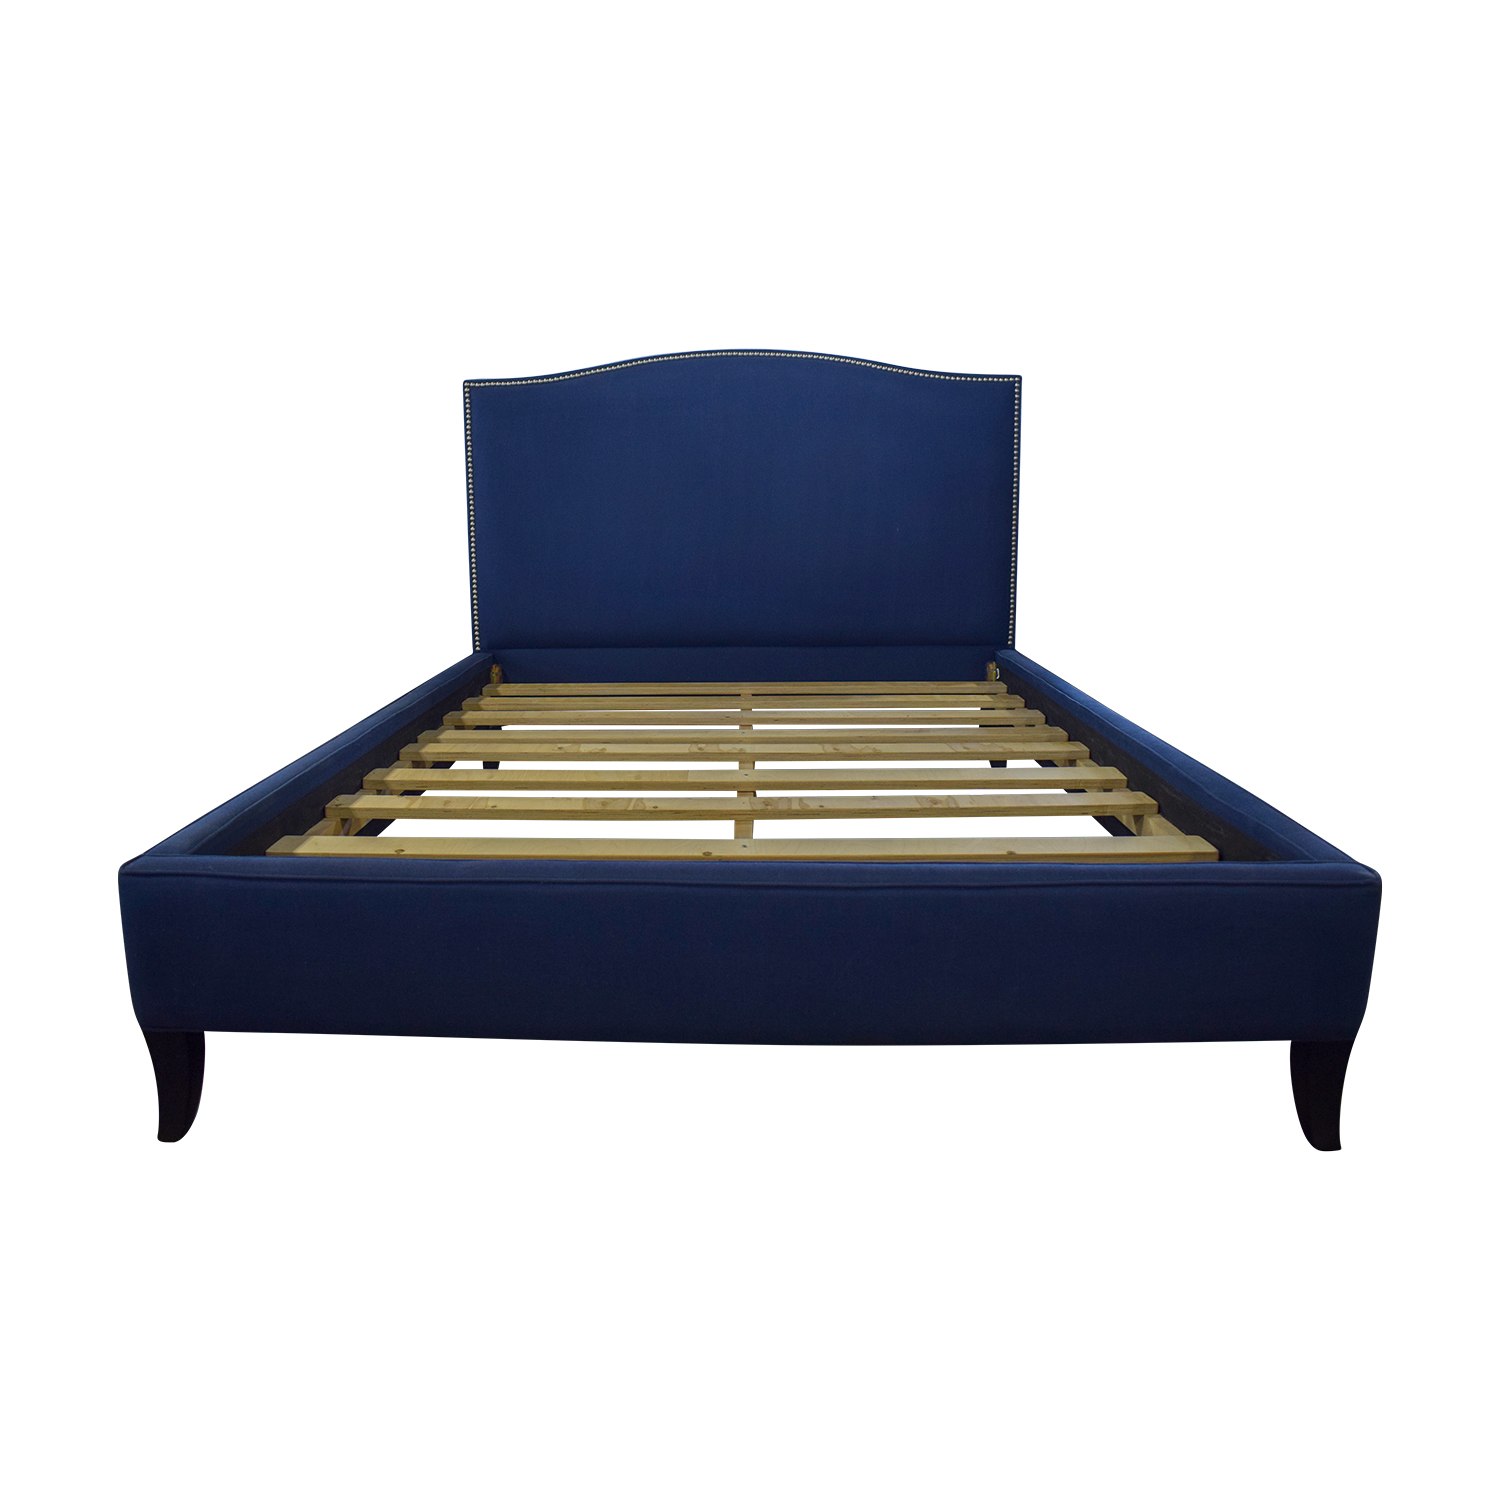 West Elm West Elm Nailhead Blue Upholstered Platform Queen Bed Frame